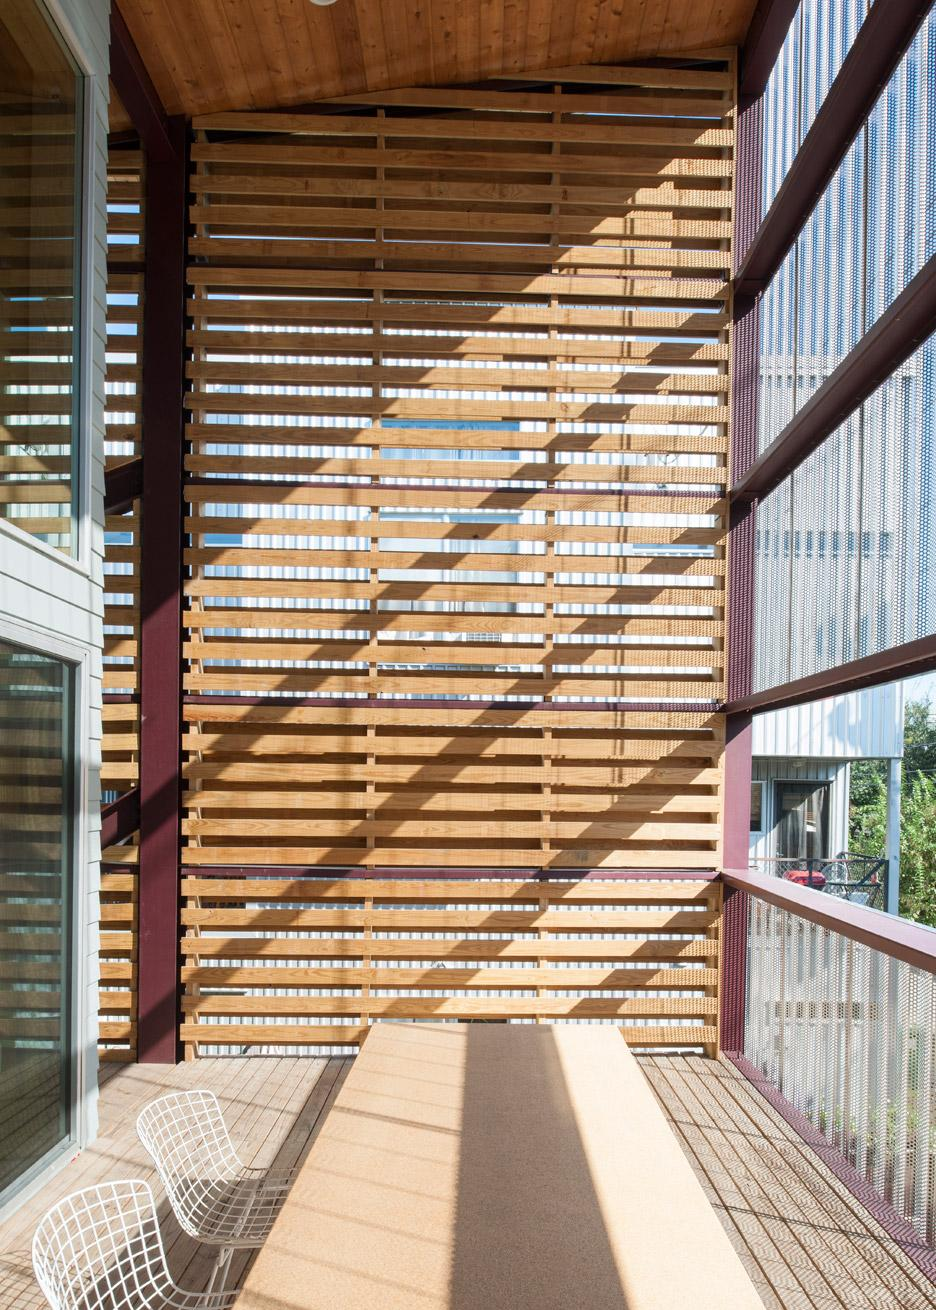 shotgun-chameleon-zdes-sustainable-house-timber-texas_dezeen_936_8